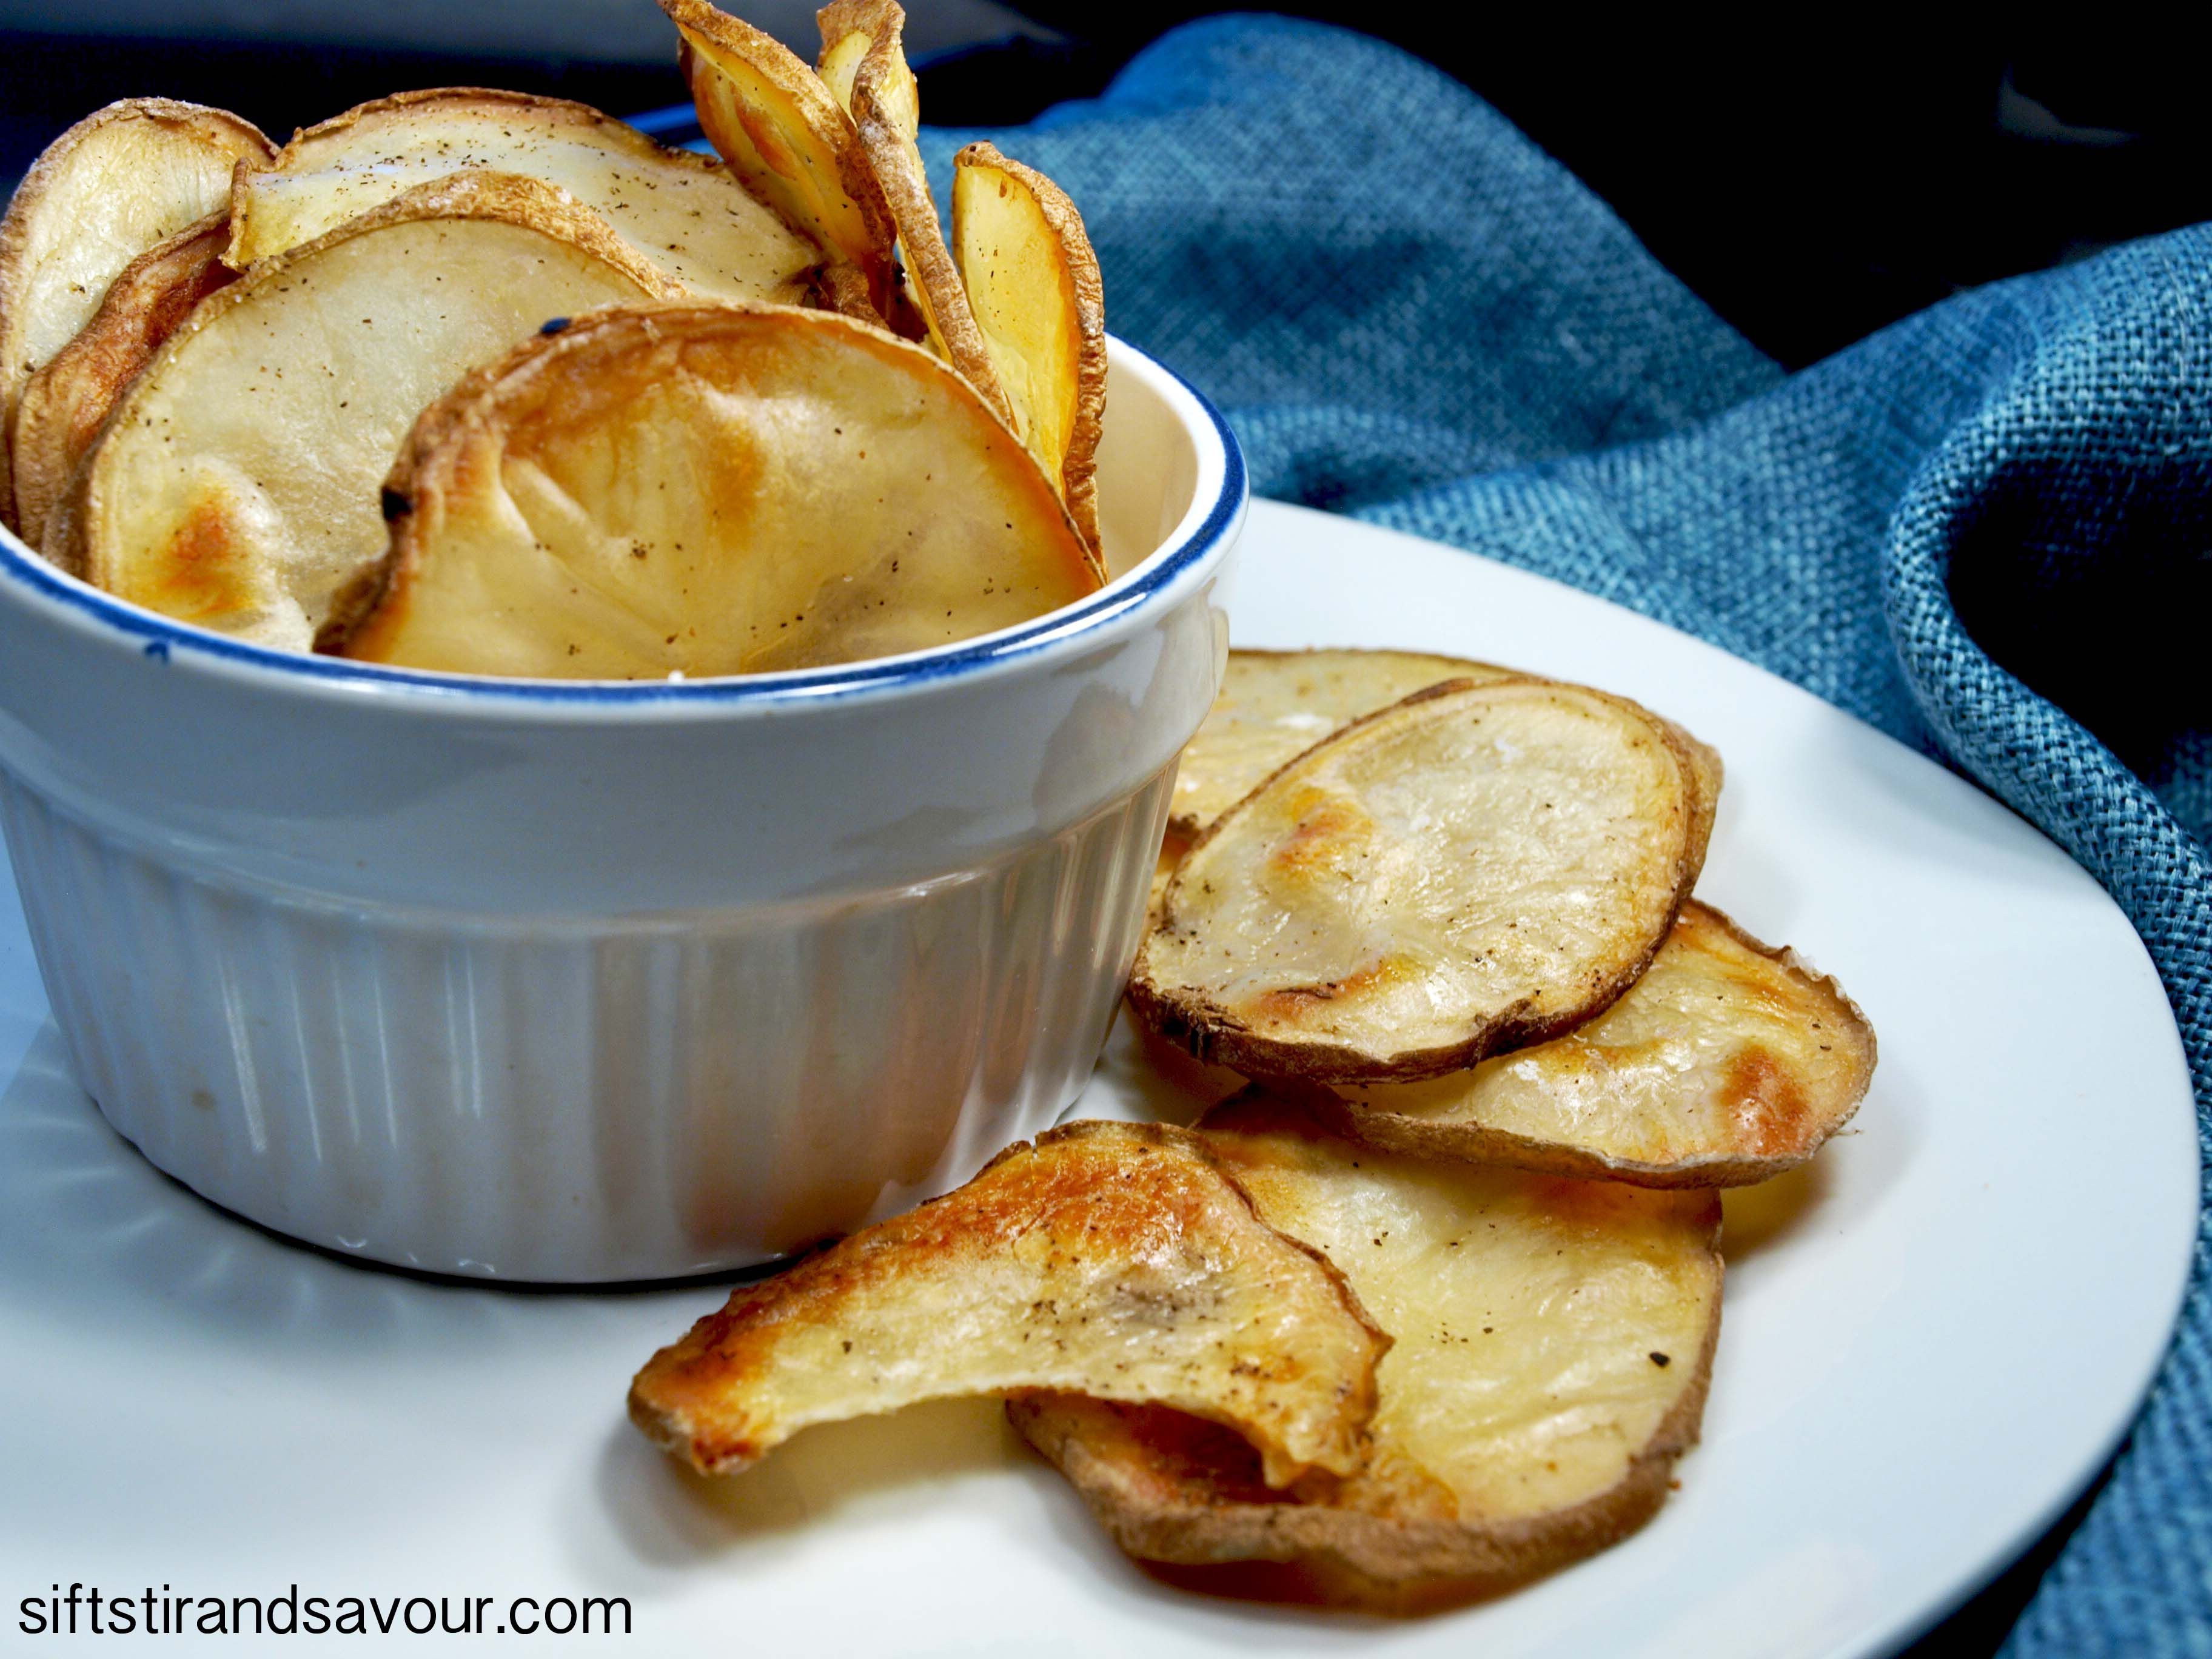 They're crunchy. They're salty. And the commercials are right, you can't have just one! You guessed it, I'm talking about potato chips: I'm not talking about those potato chips that leave your fing...